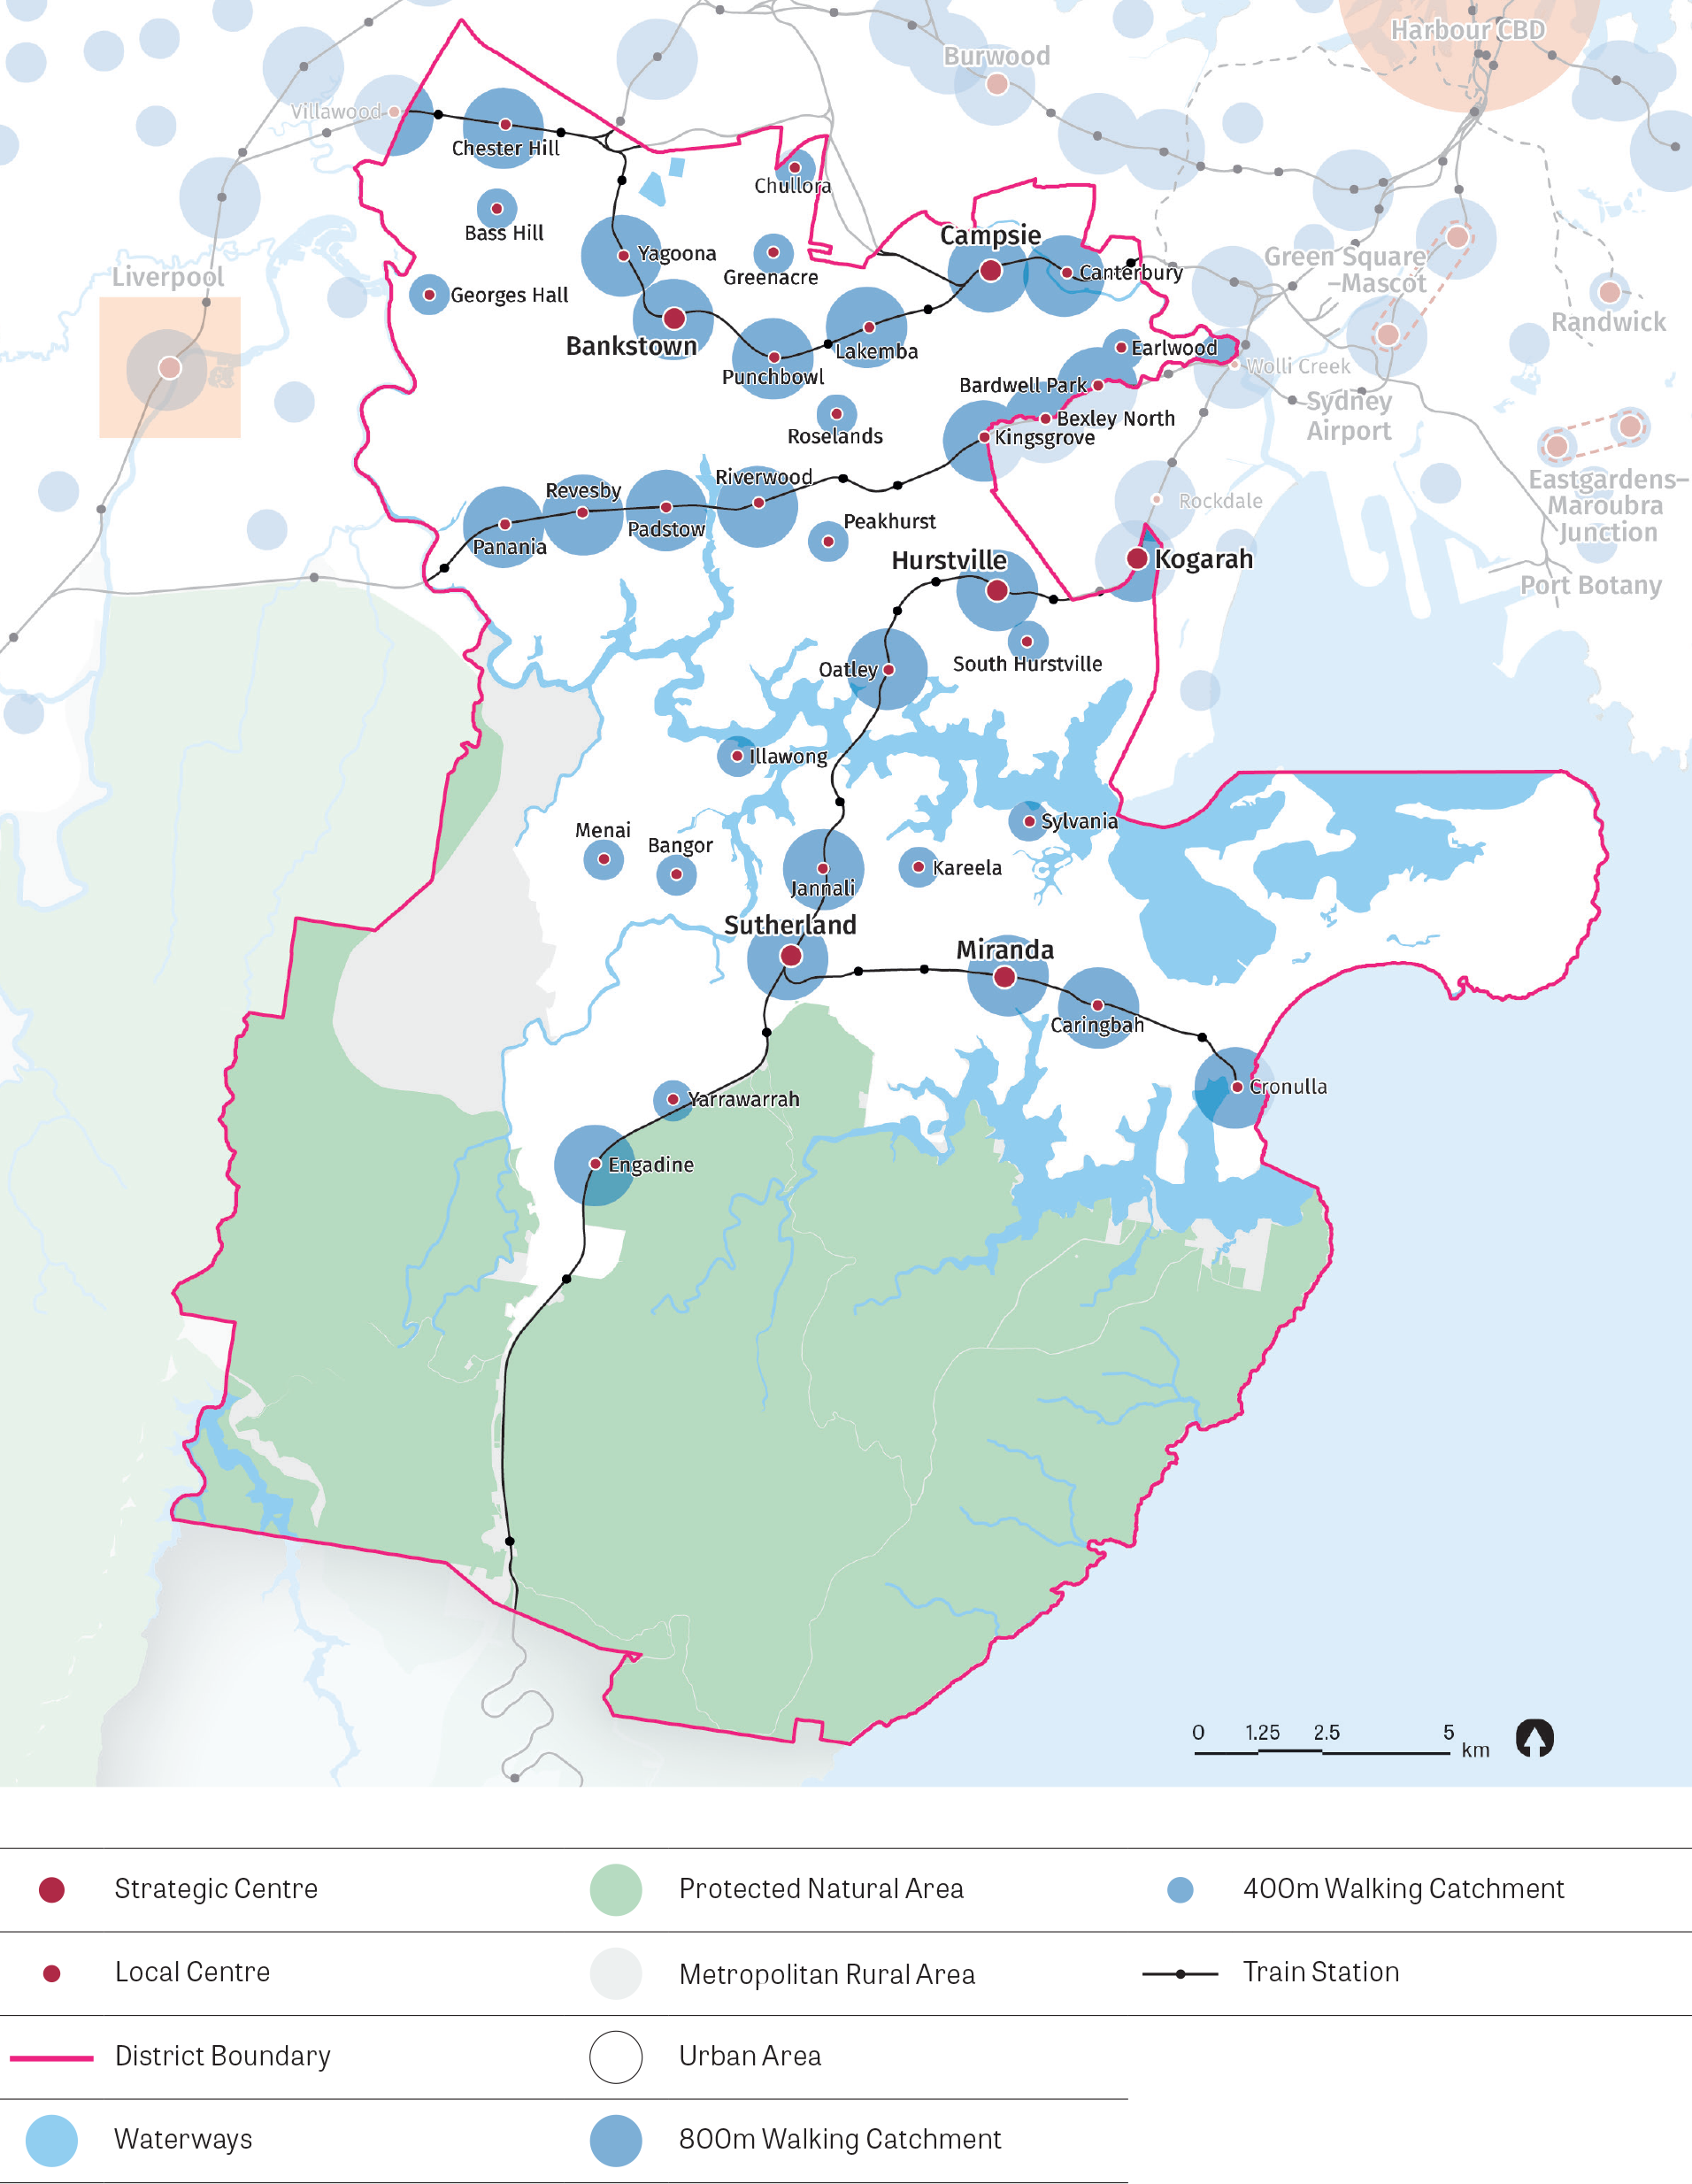 A map showing the strategic and local centres within the south district and their respective 800m and 400m walking catchments. The map also shows waterways, protected natural areas, metropolitan rural areas, urban areas and train stations.